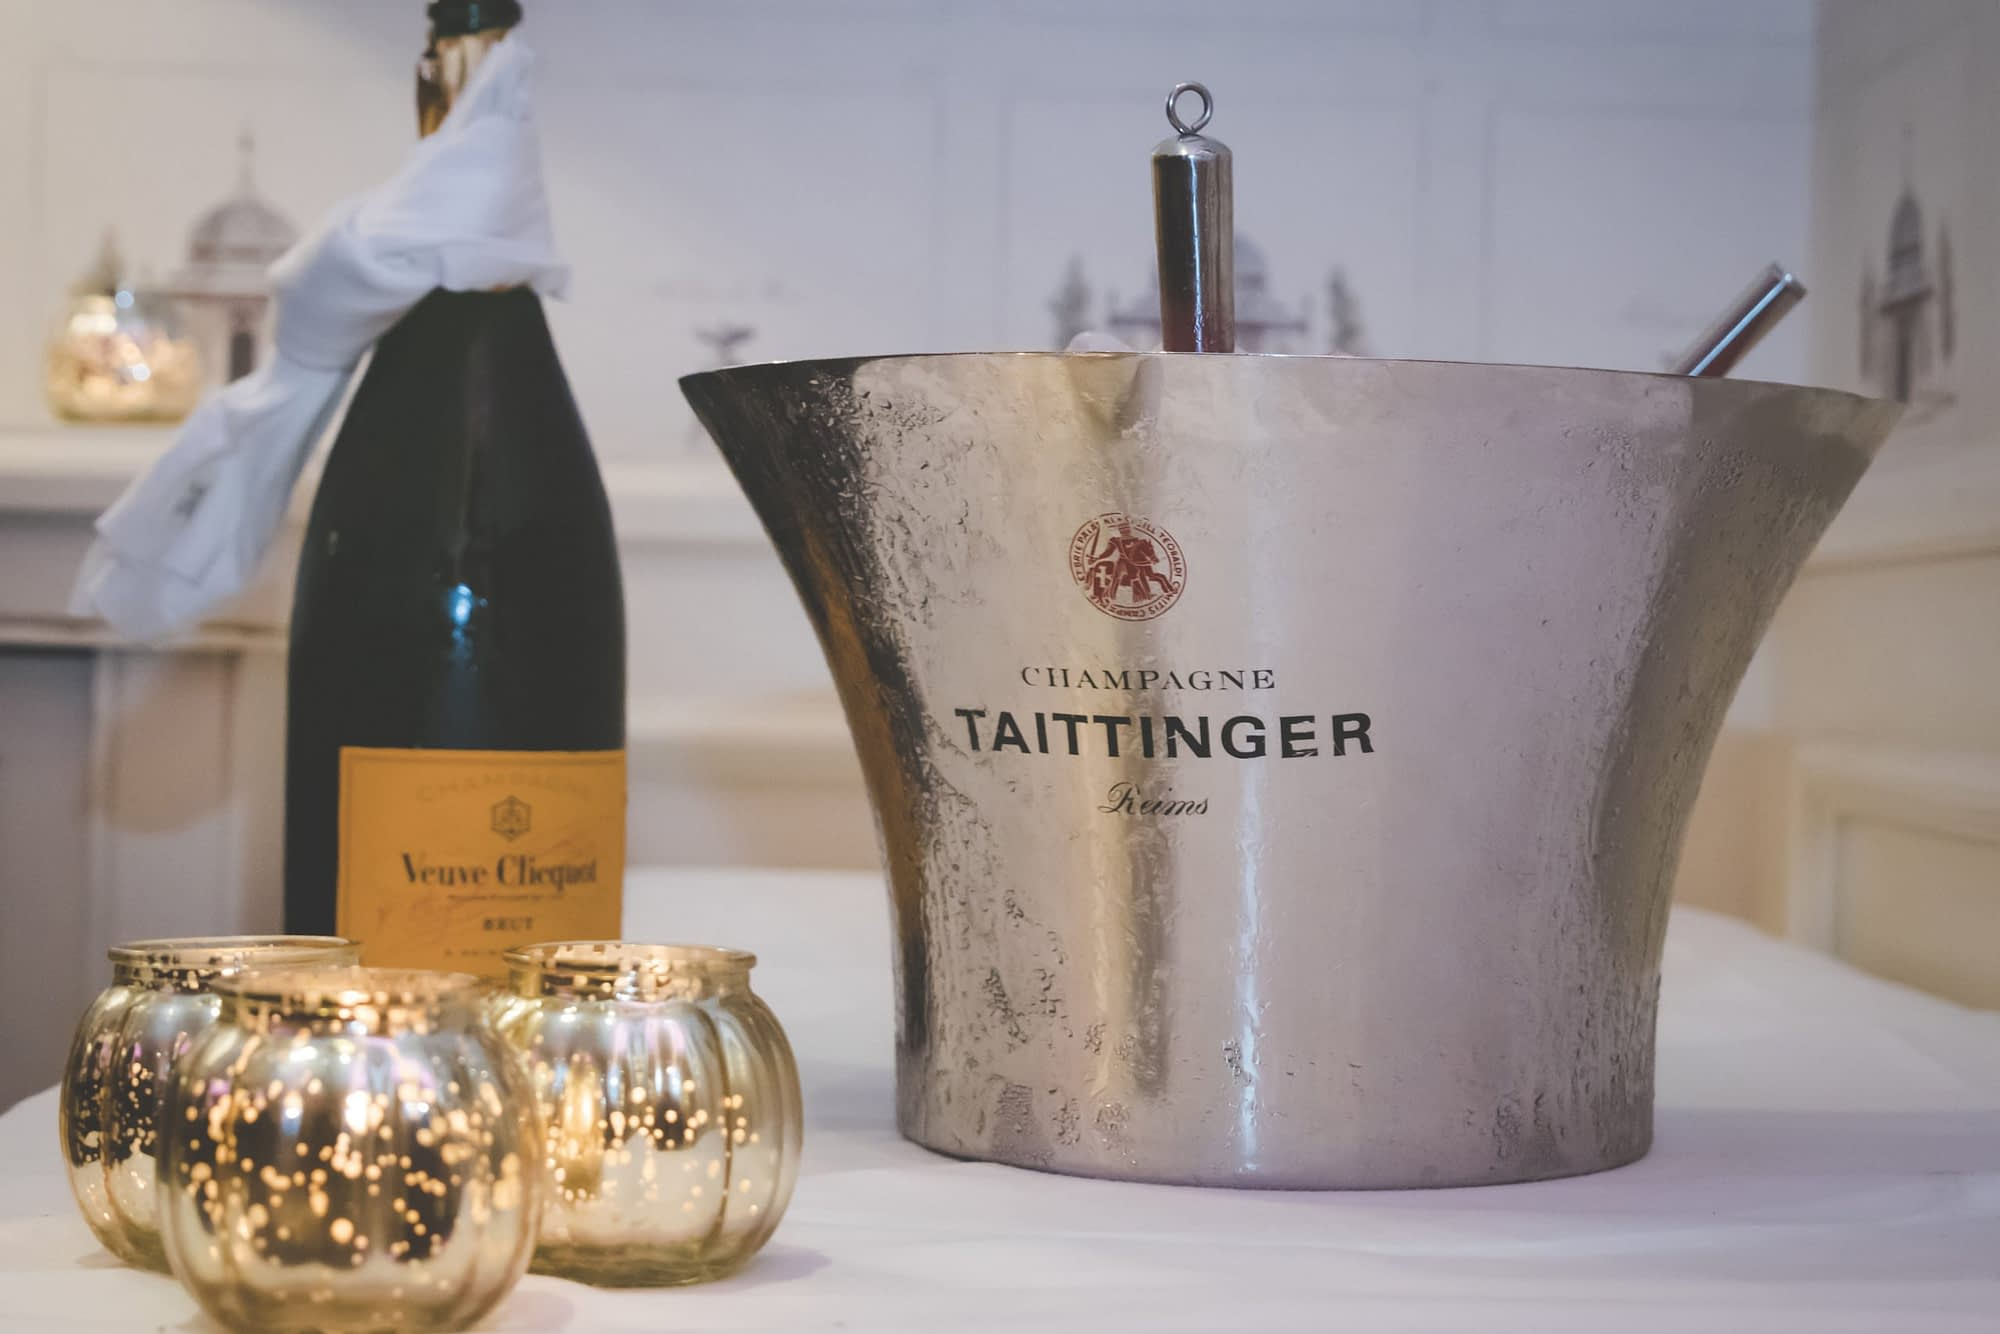 bottle of Champagne and cooler on a table